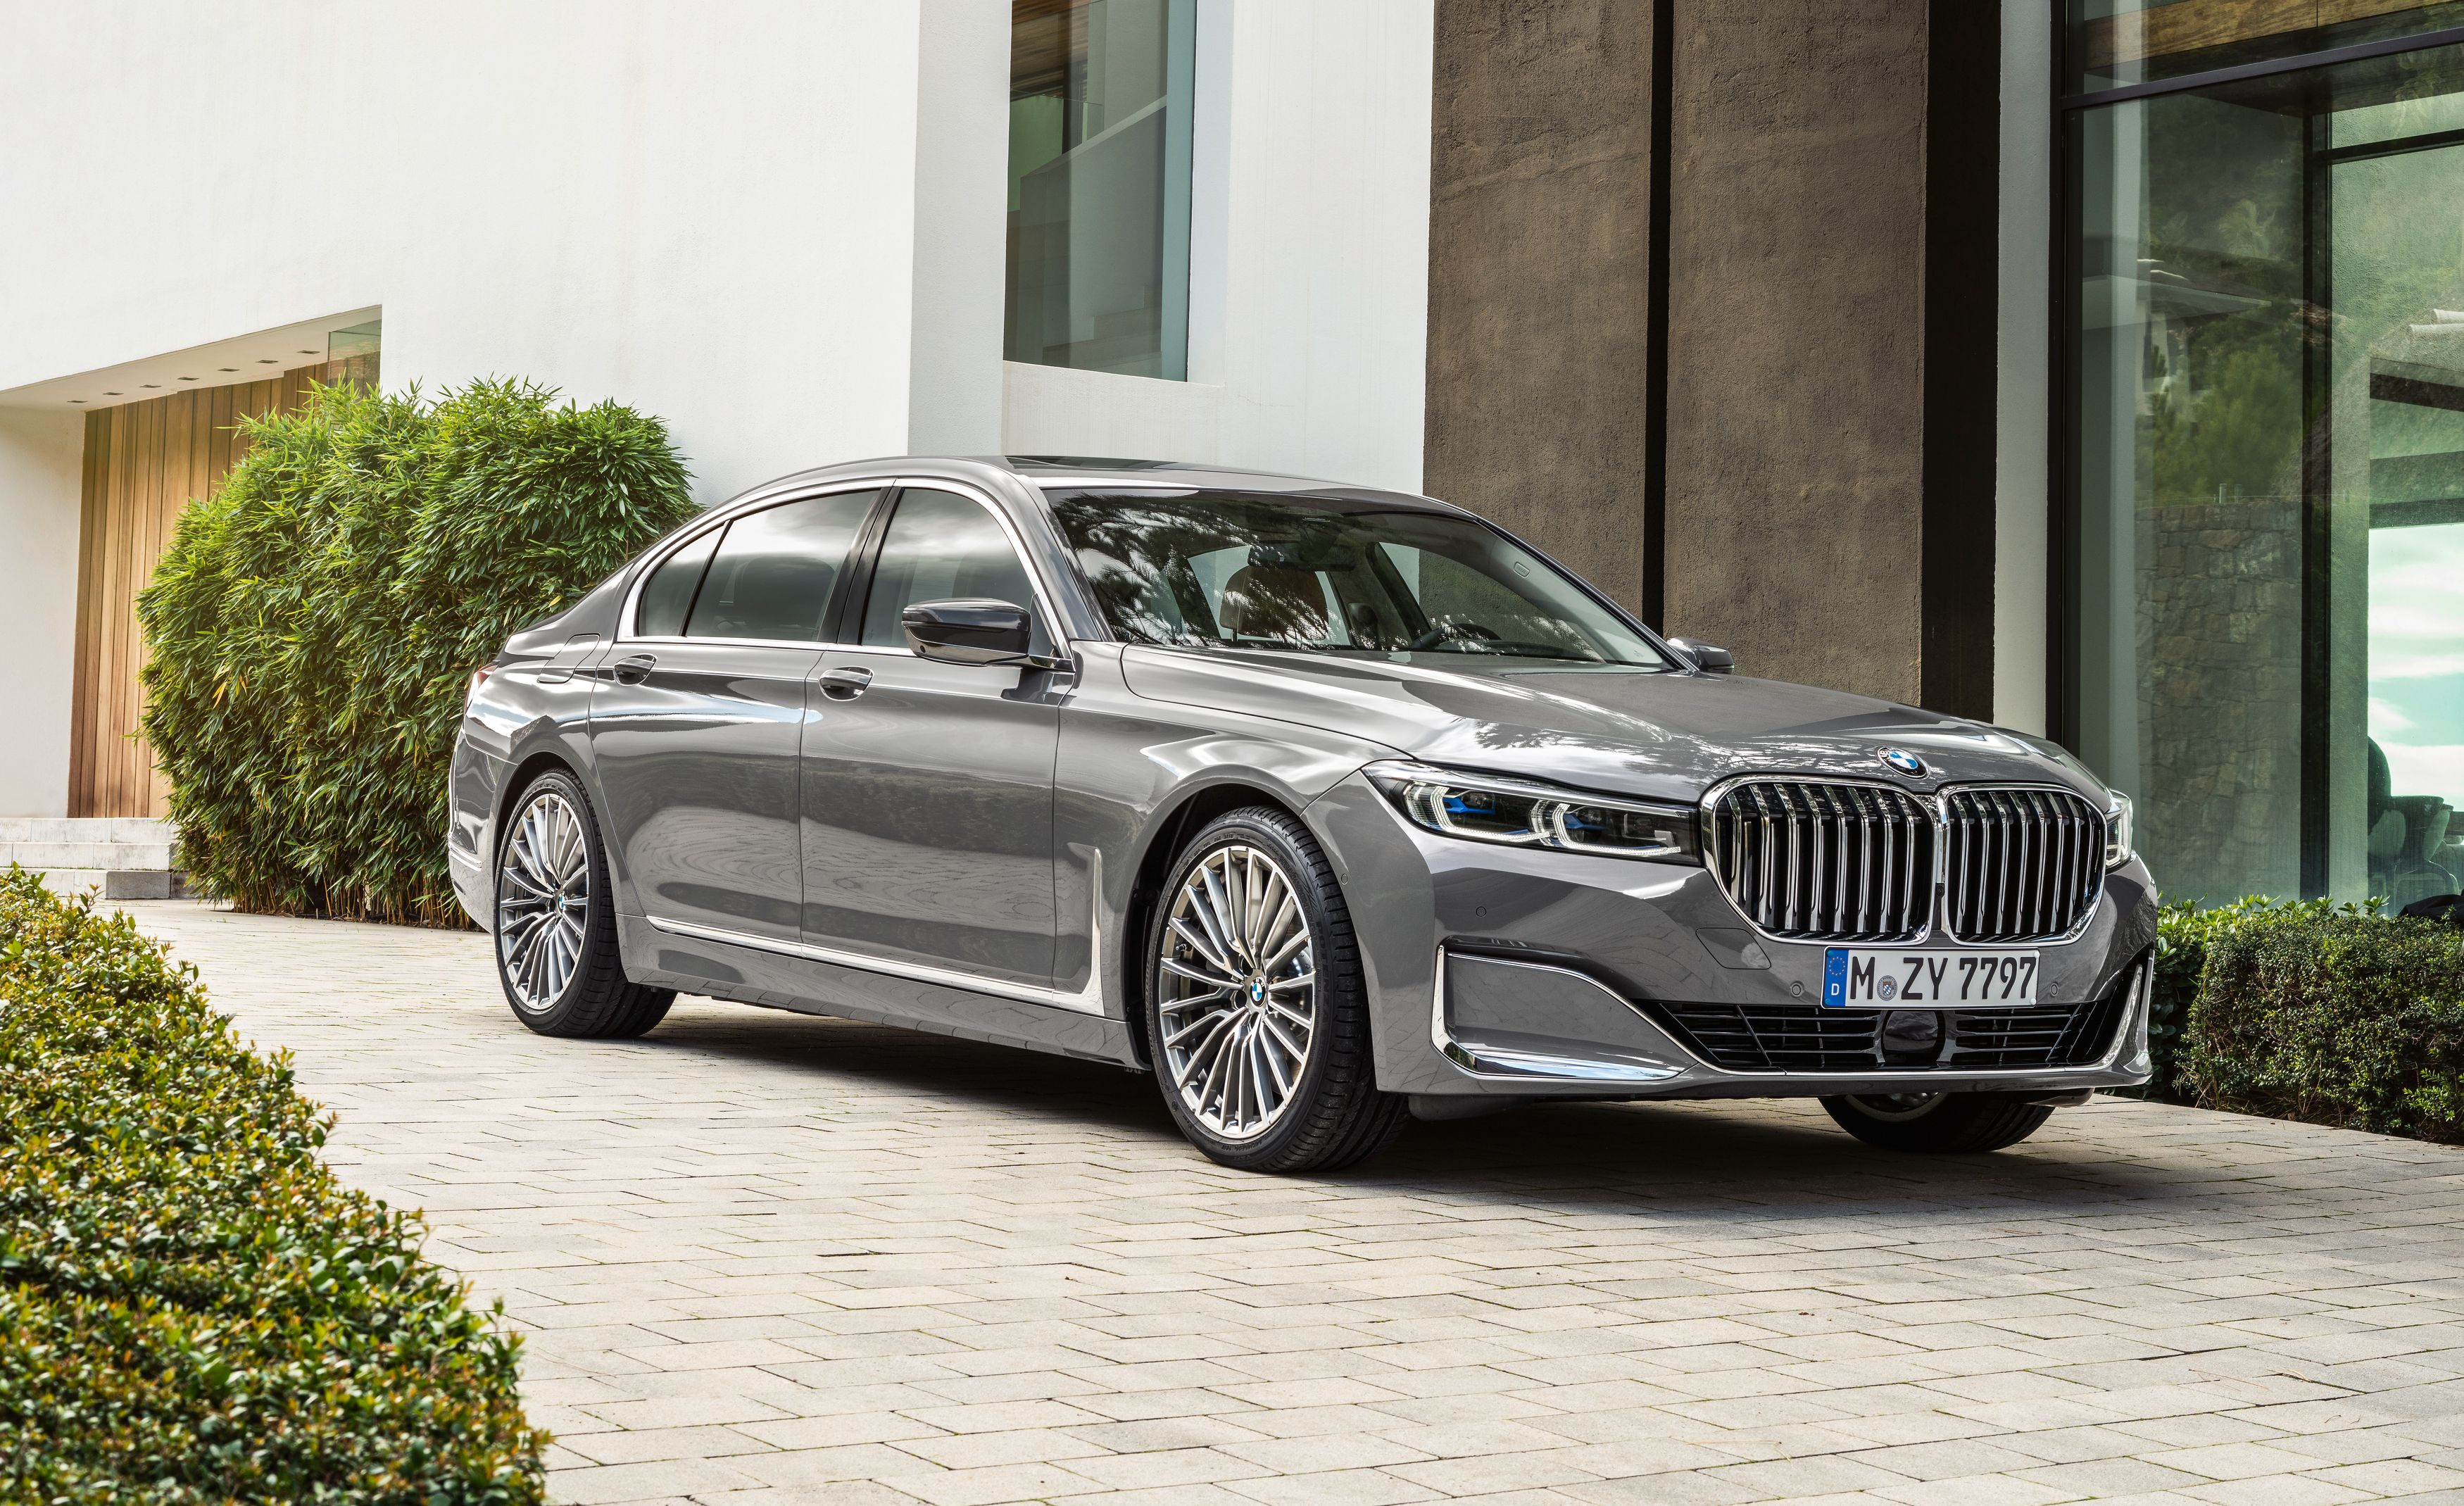 2020 Bmw 7 Series Reviews Bmw 7 Series Price Photos And Specs